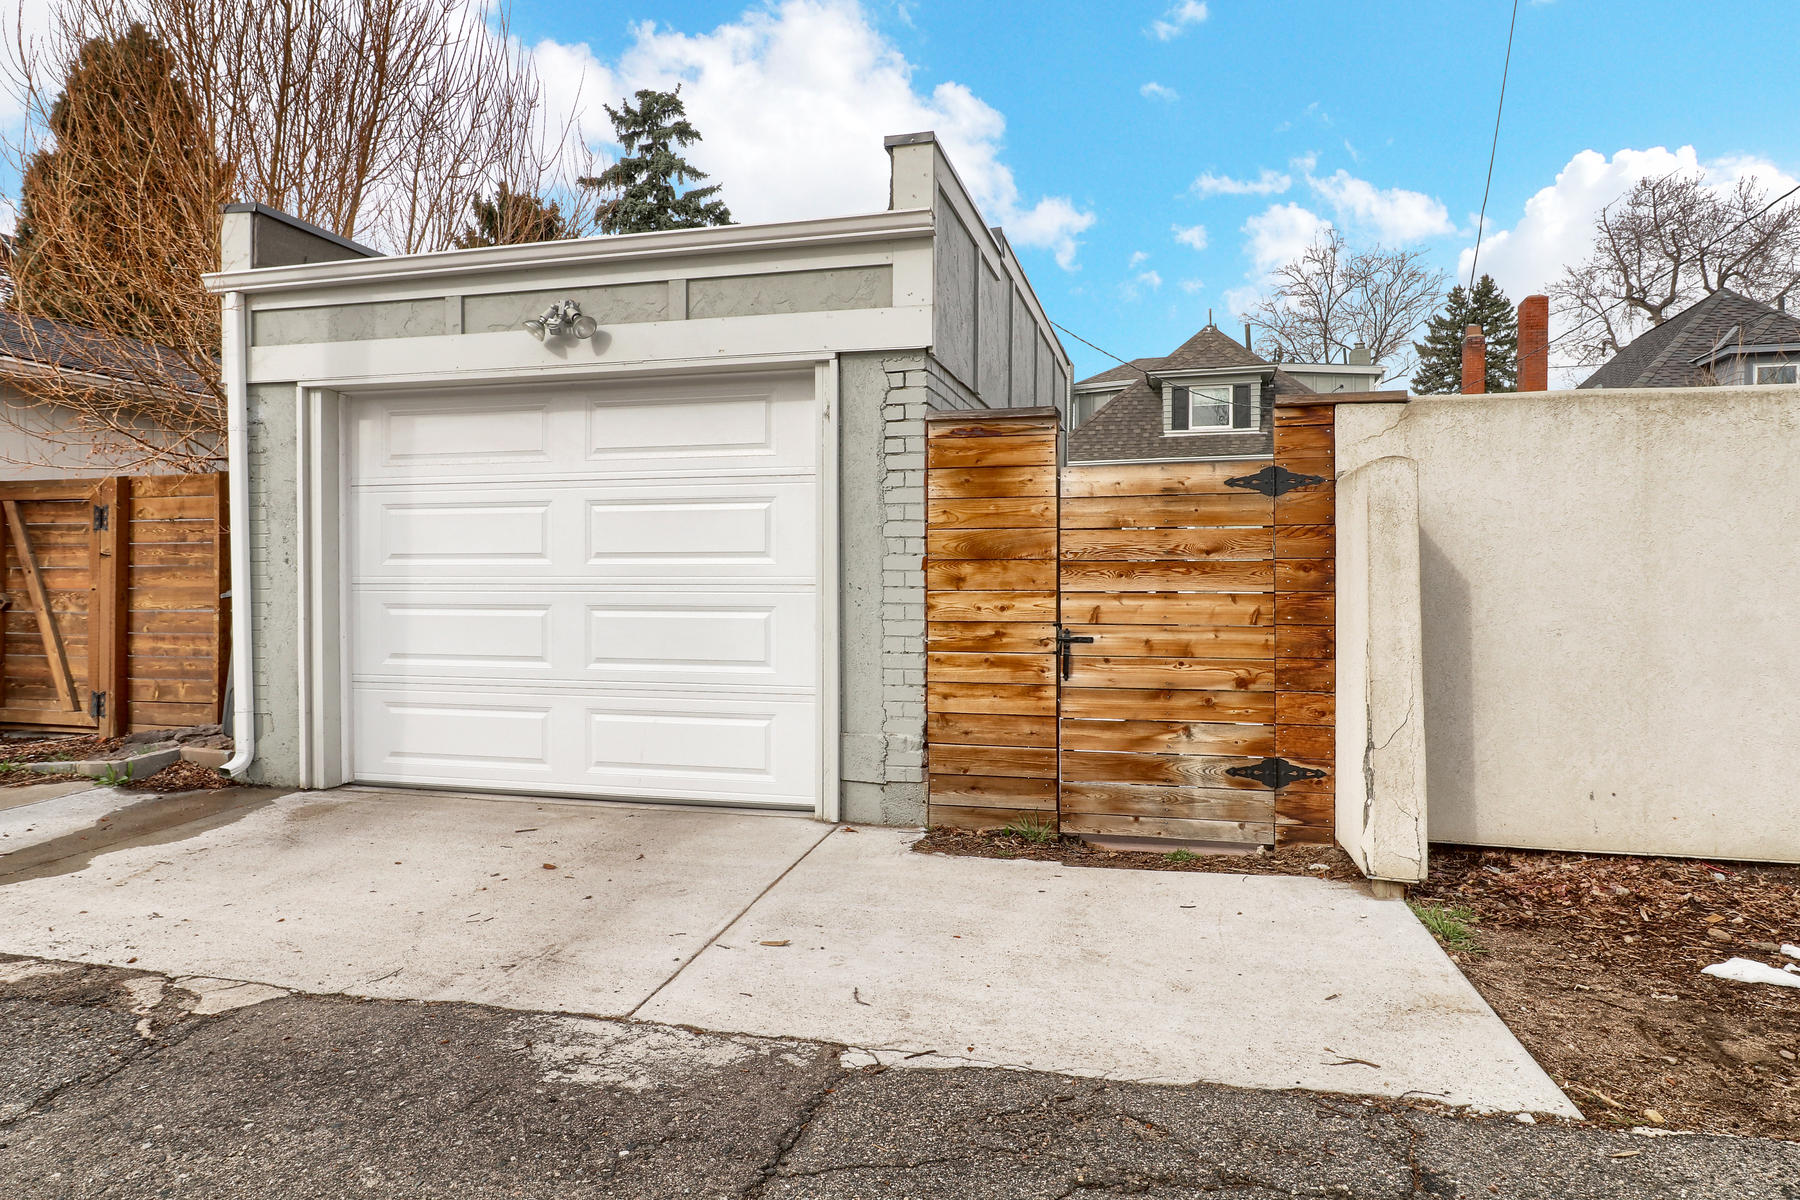 Additional photo for property listing at Charming Bungalow In West Wash Park 664 South Grant Street Denver, Colorado 80209 United States